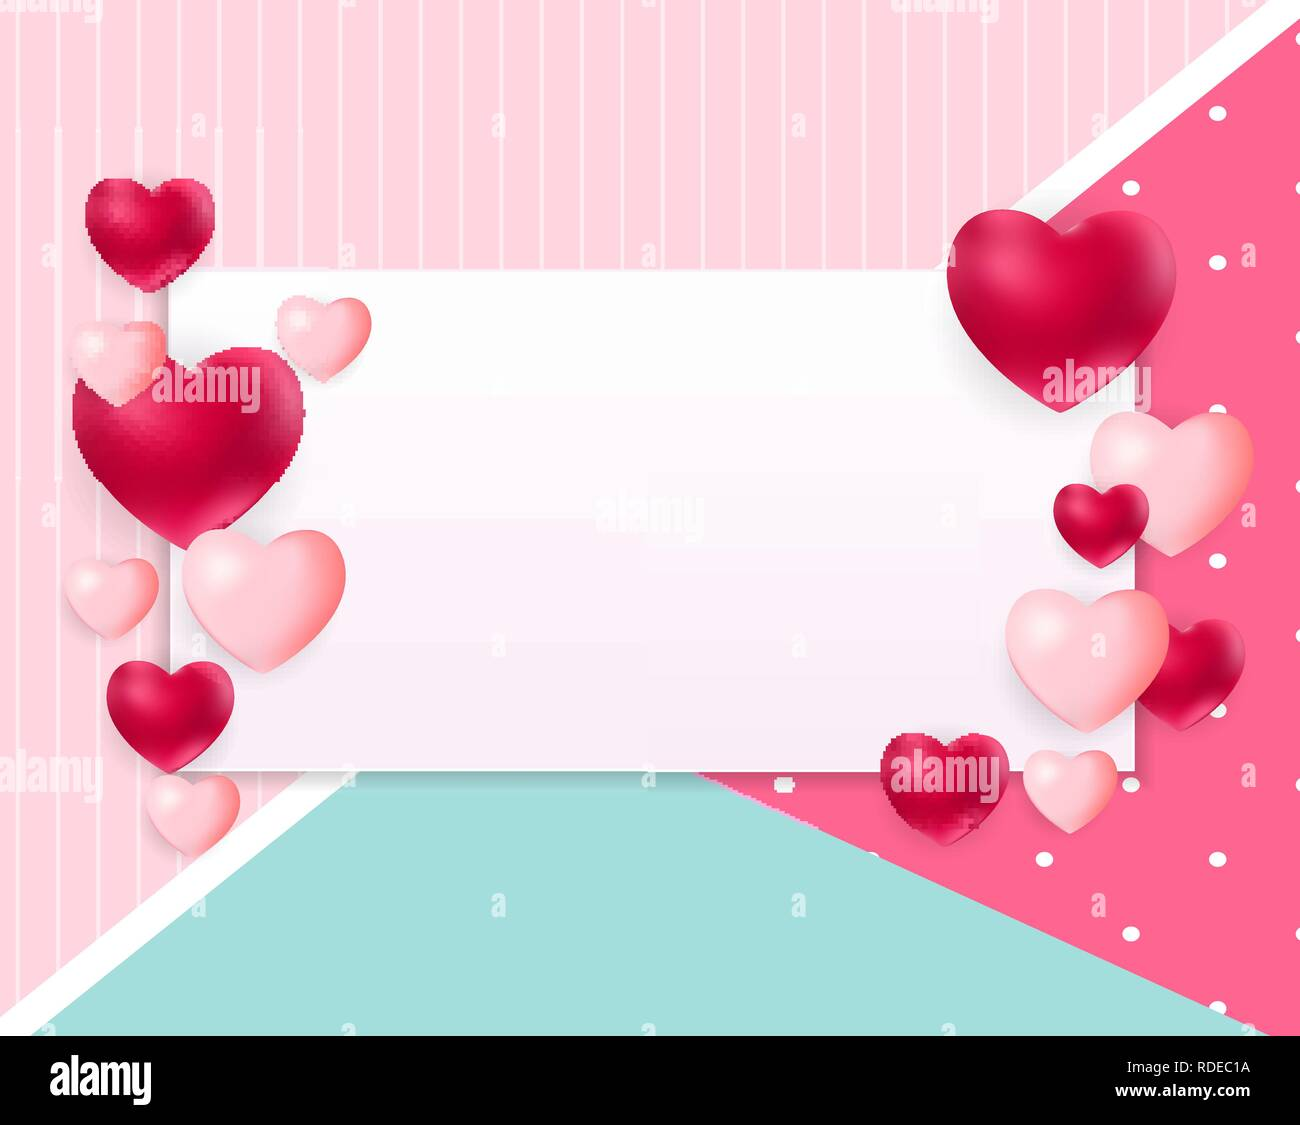 Valentine S Day Love Background Template With Empty Blank Page For Sample Text Vector Illustration Eps10 Stock Vector Image Art Alamy